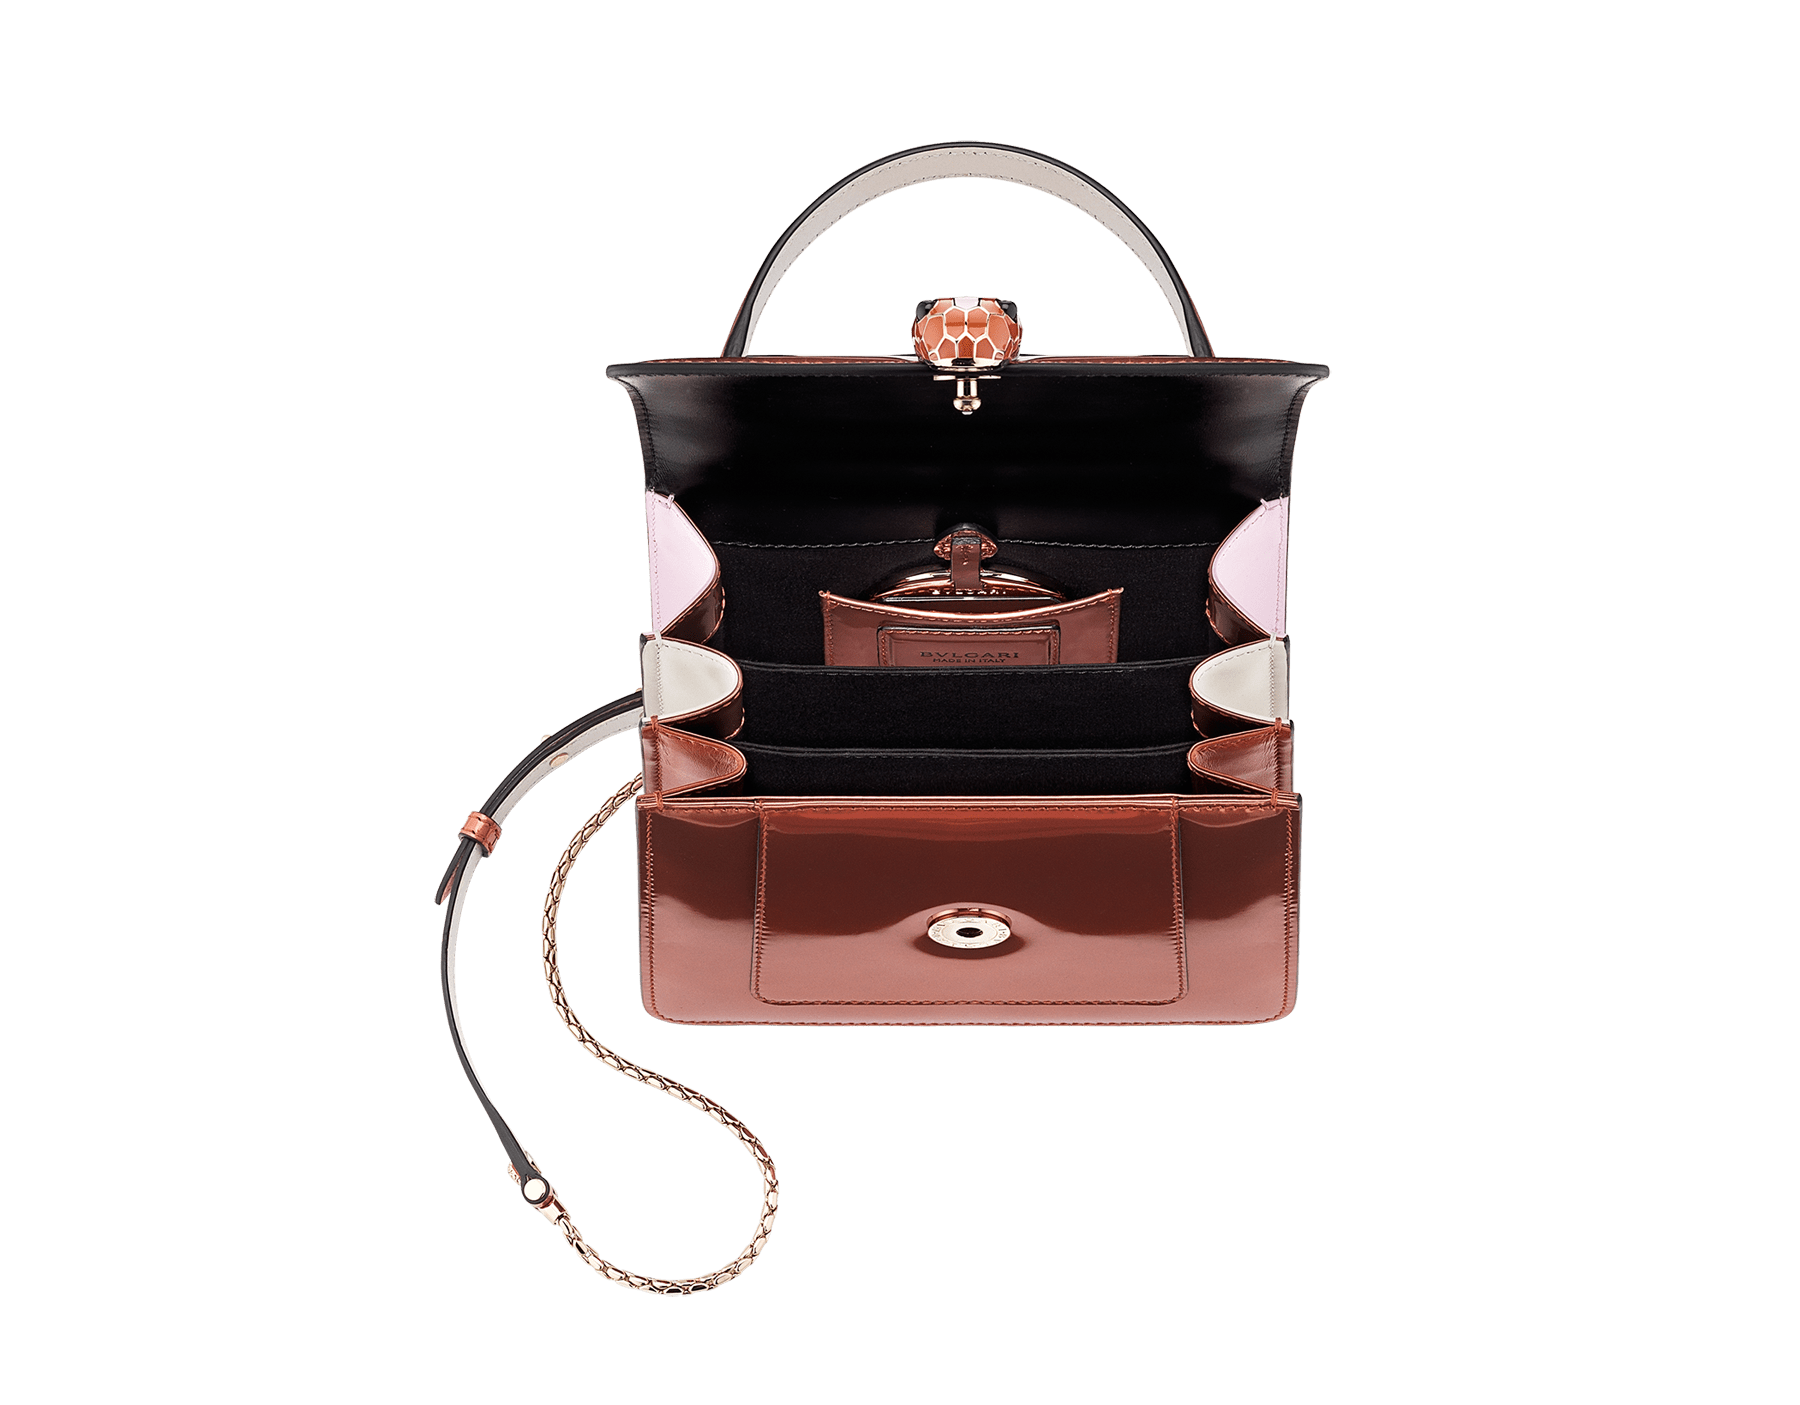 Serpenti Forever crossbody bag in imperial topaz brushed metallic calf leather with Roman garnet, rosa di francia and white agate calf leather sides. Iconic snakehead closure in light gold plated brass embellished with imperial topaz and white enamel and black onyx eyes. 288968 image 5